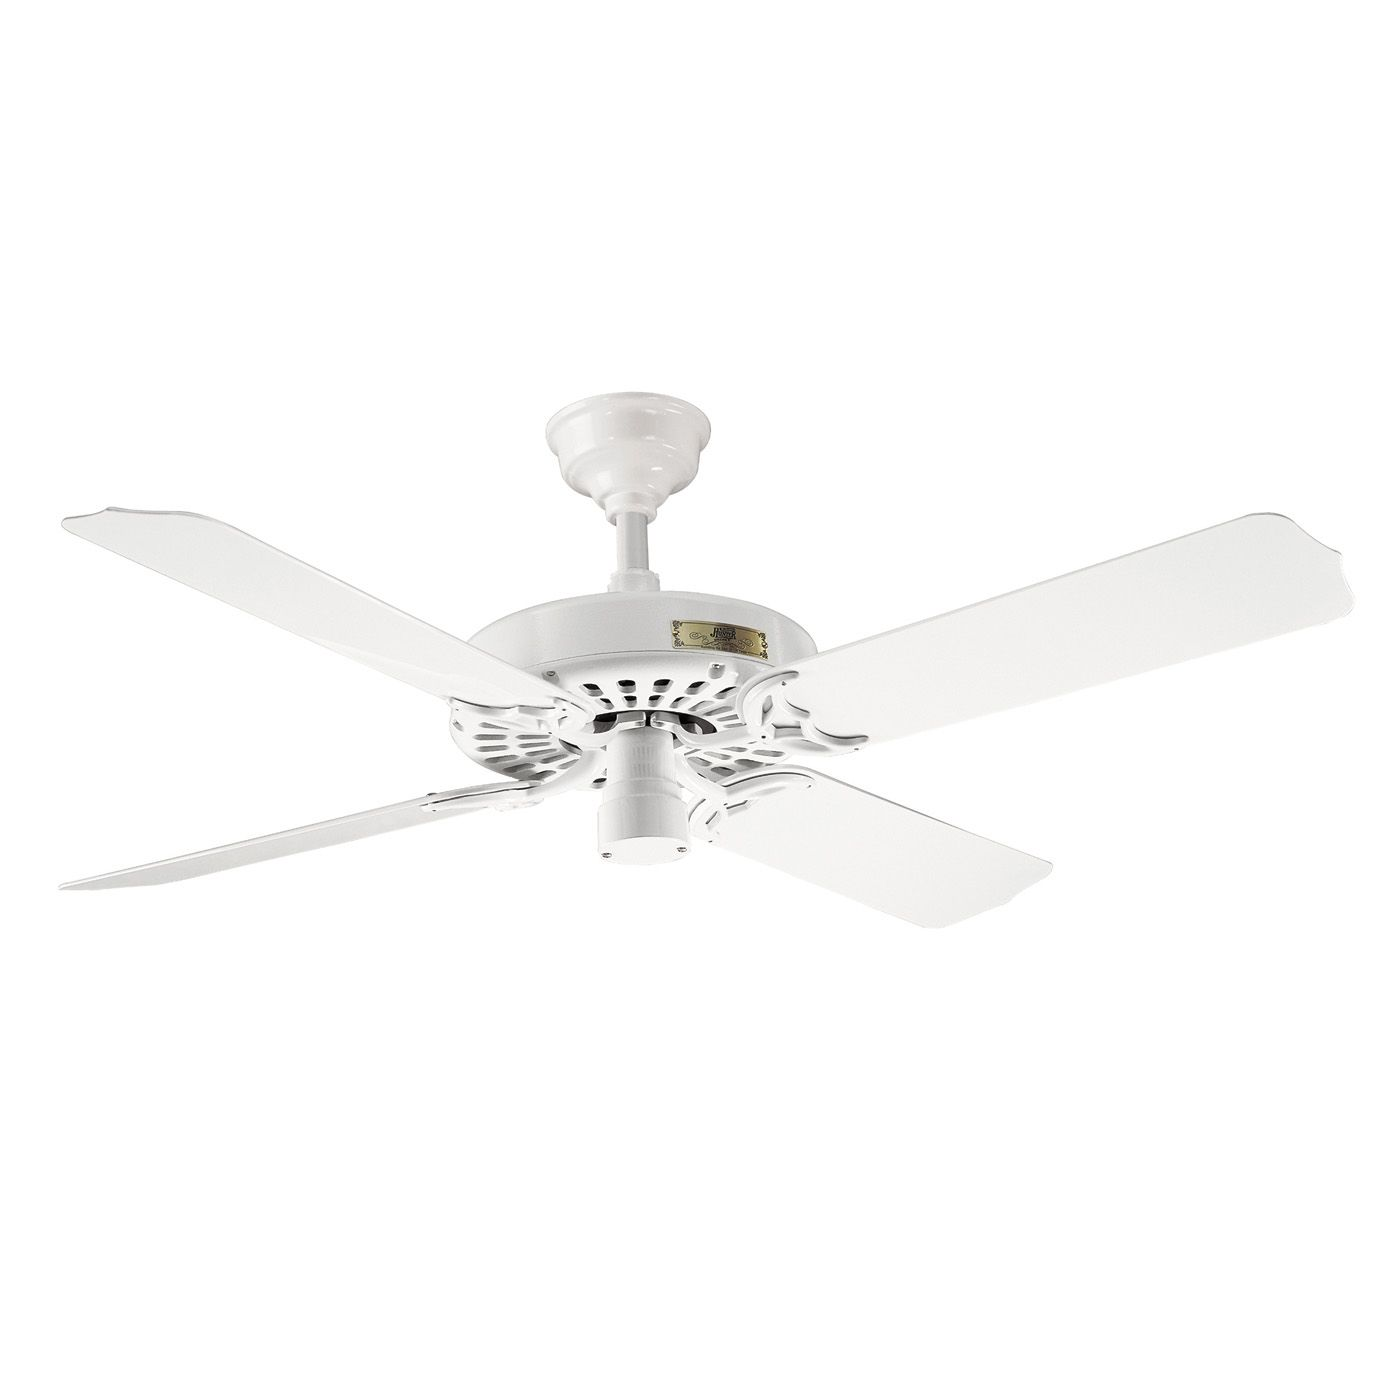 Hunter Fan Company 25602 52in Outdoor Original Complete Ceiling Fan Ceiling Fans Without Lights Ceiling Fan Outdoor Ceiling Fans